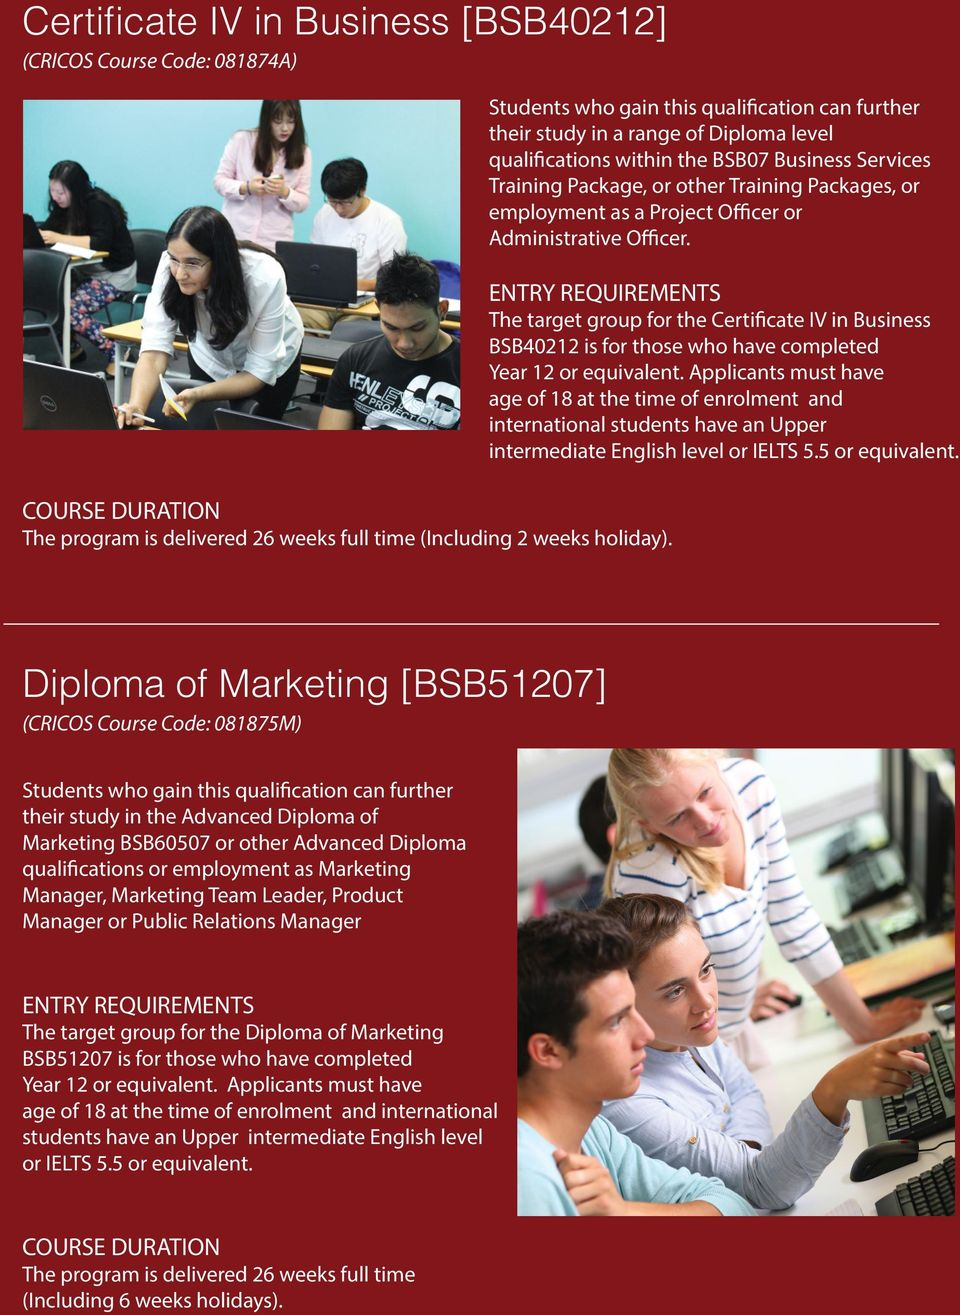 The target group for the Certificate IV in Business BSB40212 is for those who have completed Year 12 or equivalent.